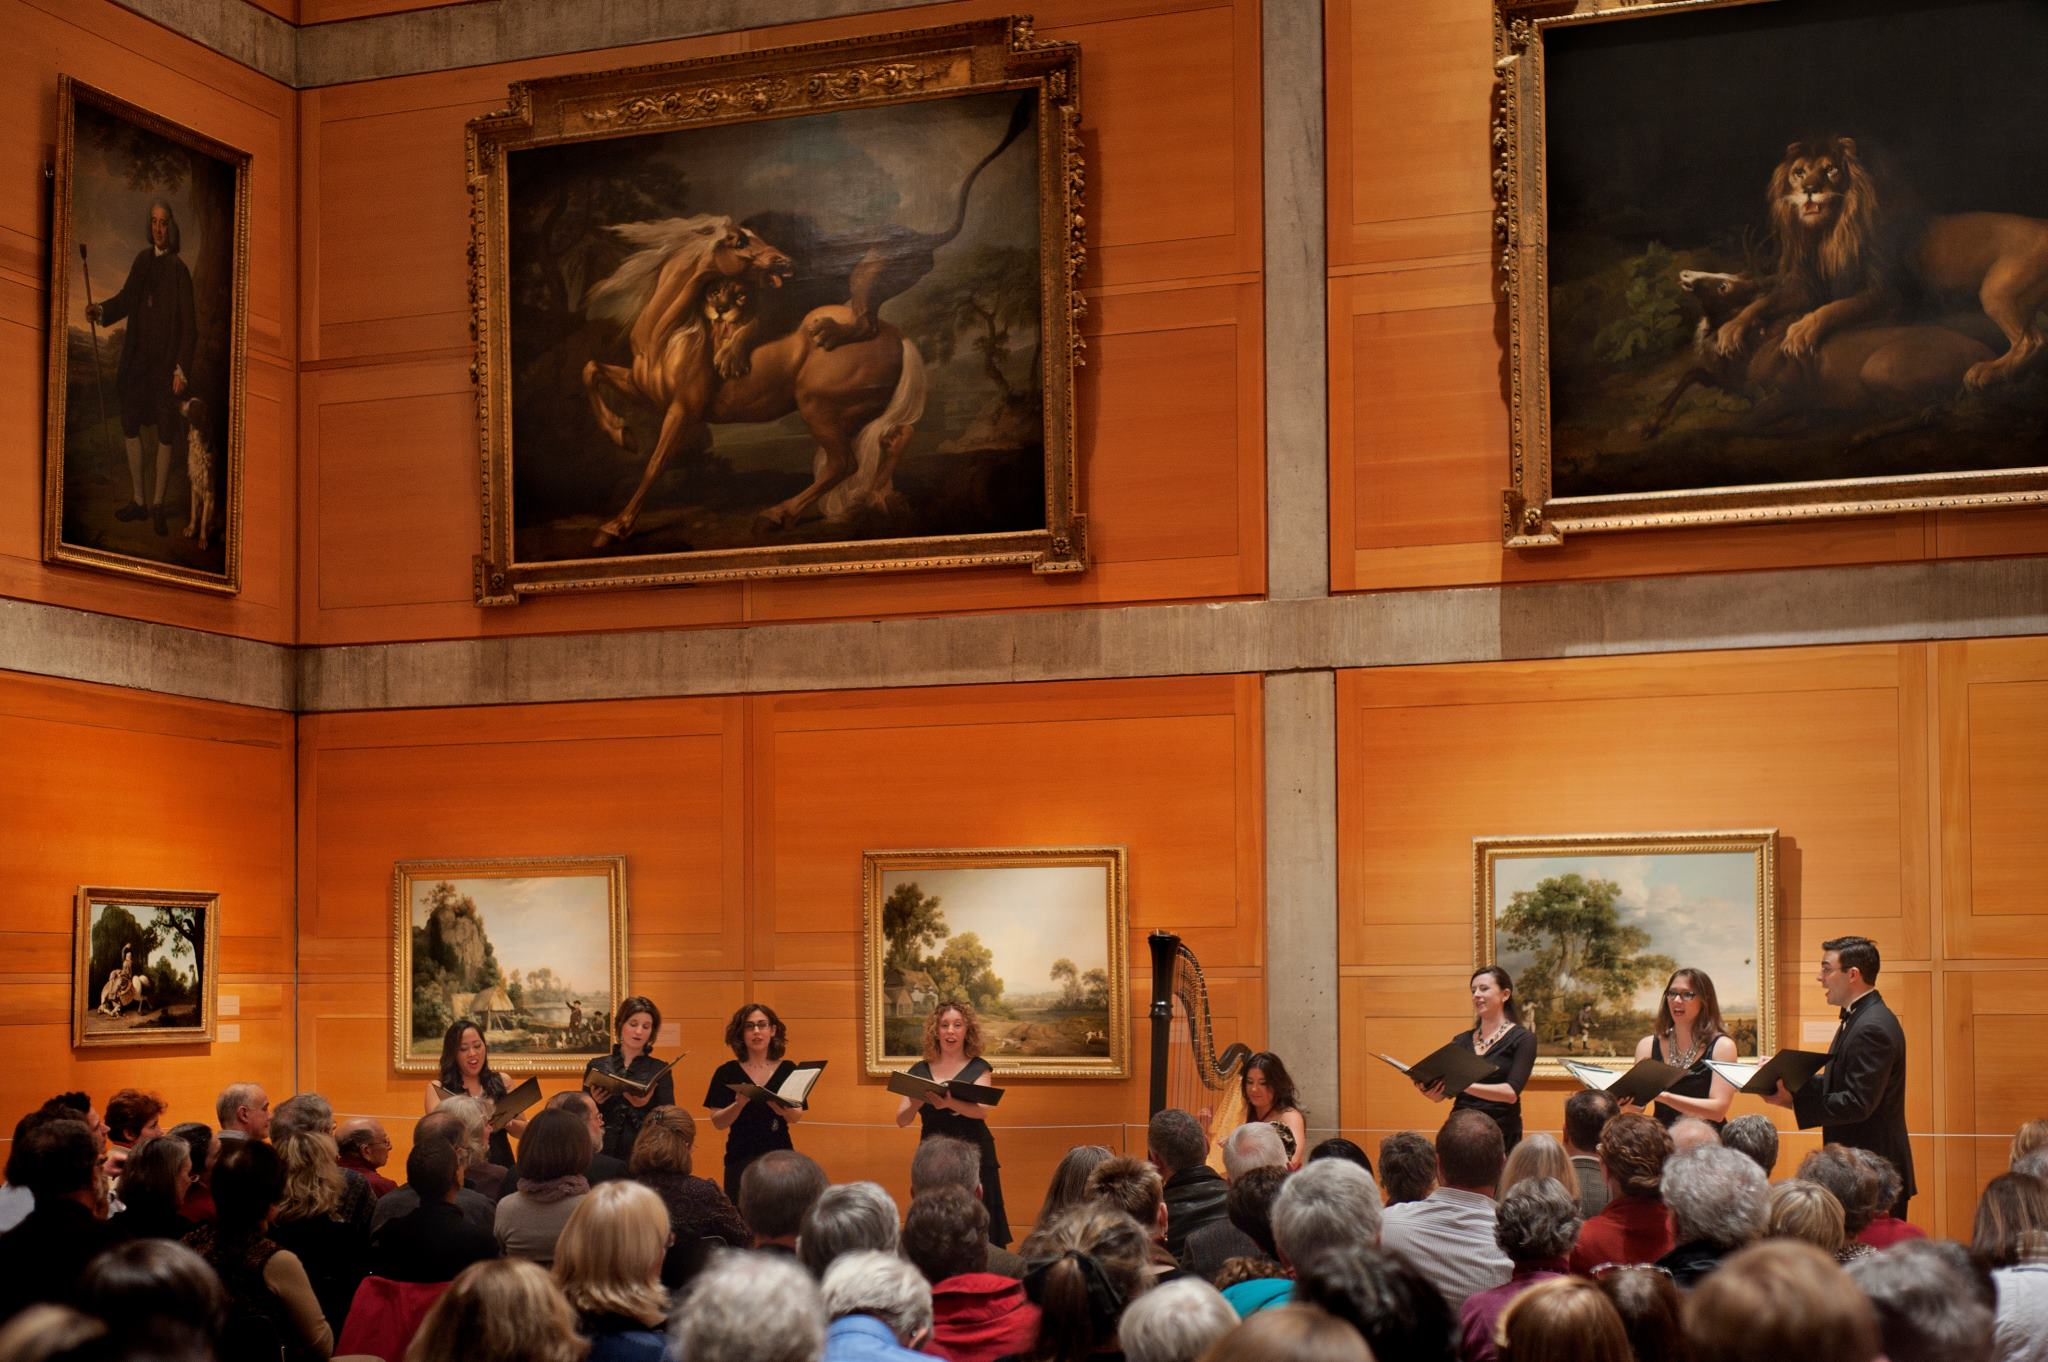 Etherea performs at Yale Center for British Art, December 13, 2012 - Photo by Matthew Fried